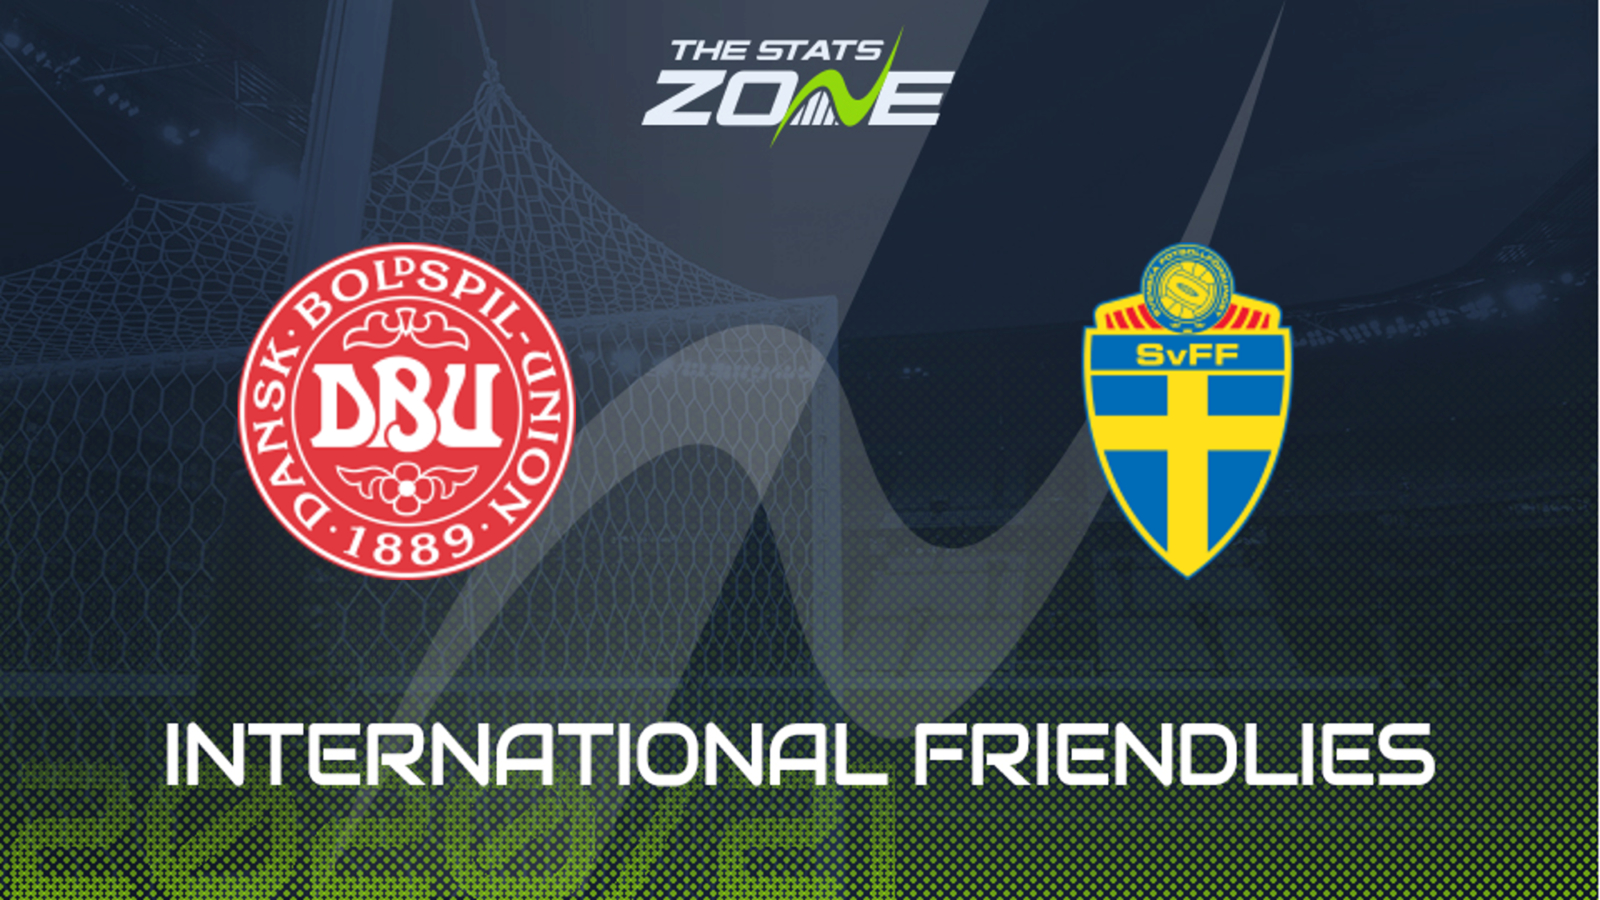 Sweden vs estonia betting expert basketball packers vs seahawks betting predictions